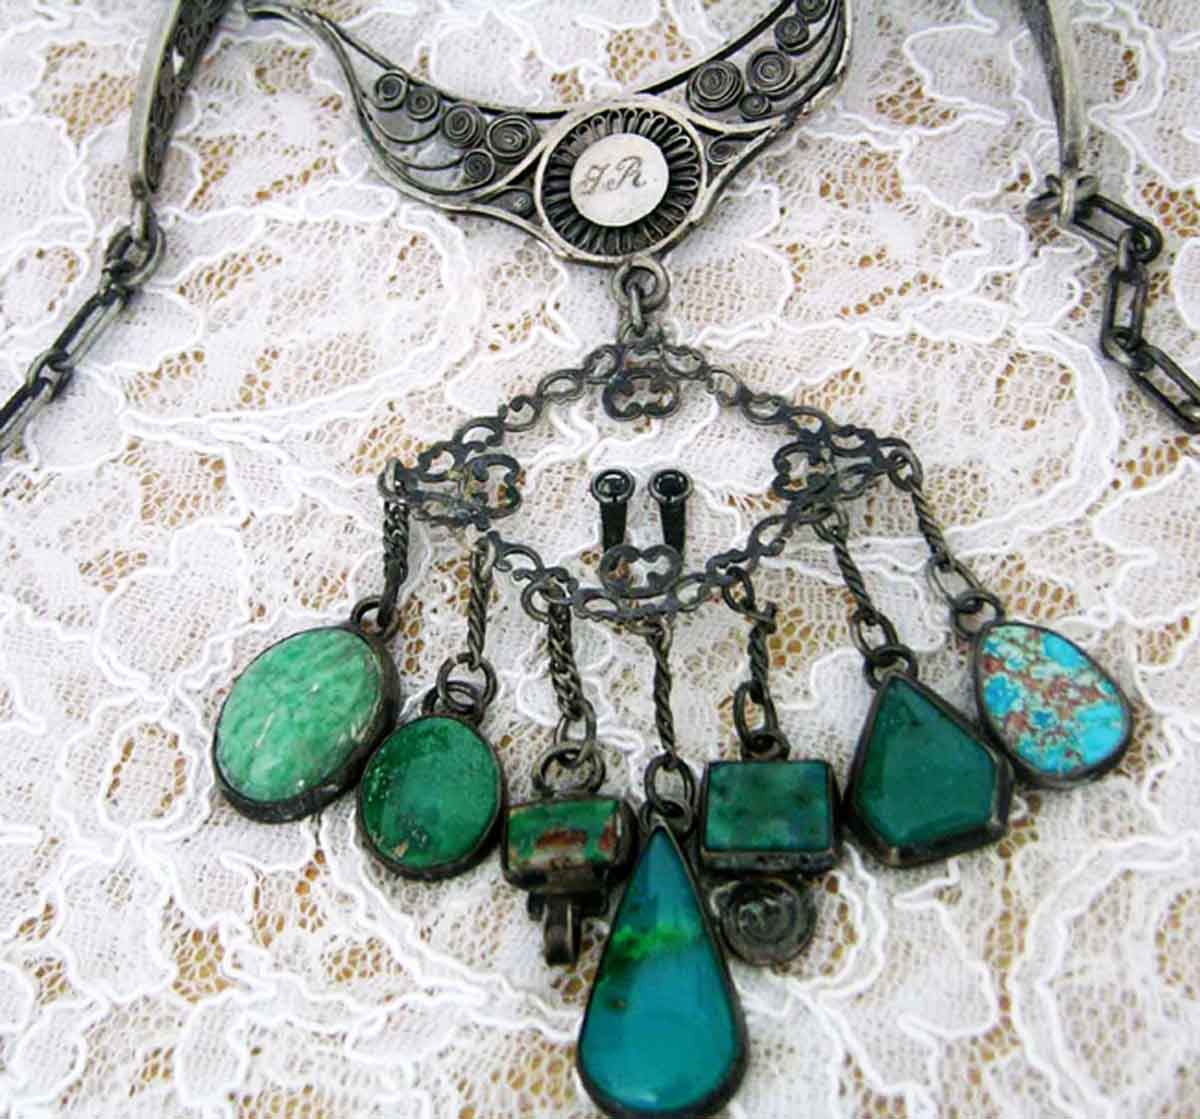 SILVER_NECKLACE_FLAT_TURQUOISE_FRONT_CLOSE_UPj_BEAD_FORUM_vs_lighter.jpg (132.1 KB)